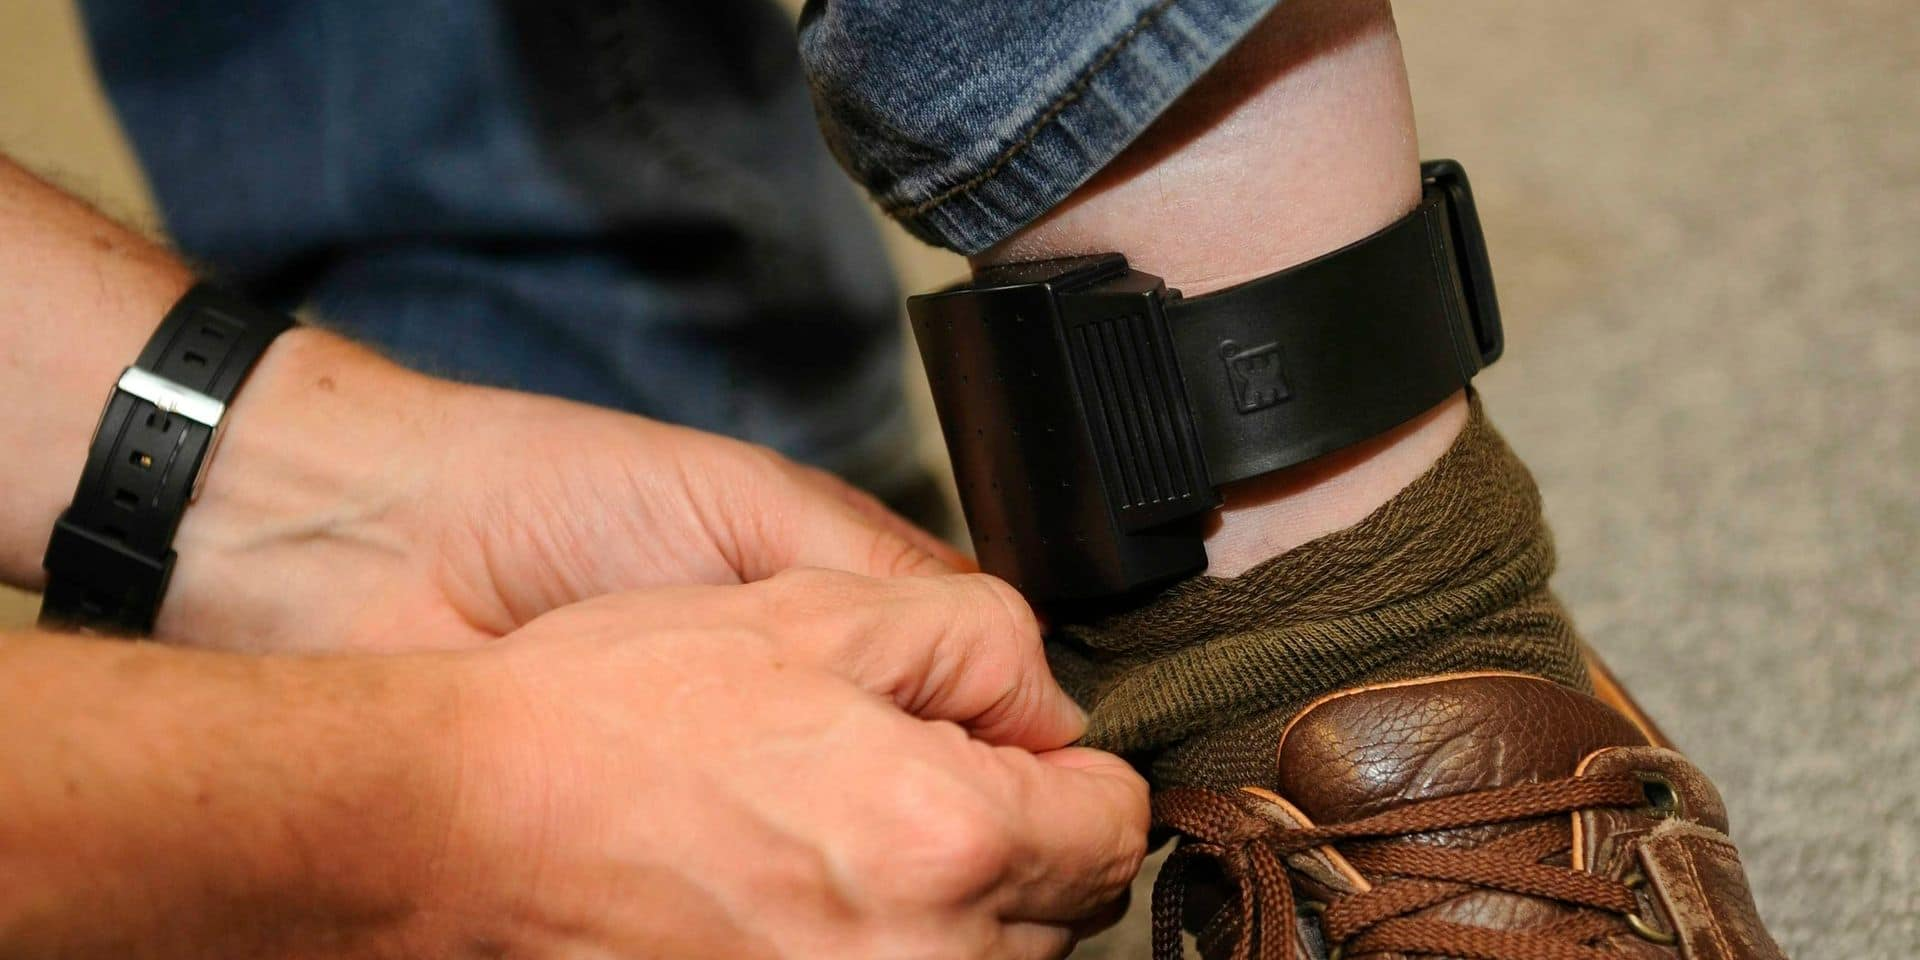 20090527 - BRUSSELS, BELGIUM: Illustration picture of an ankle bracelet, during the visit of Minister of Justice and Institutional Reforms Stefaan De Clerck (CD&V Flemish christian democrats) to the 'Nationaal Centrum voor Elektronisch Toezicht - Centre National de Surveillance Electronique' (National Center for Electronic Surveillance), in Brussels, Wednesday 27 May 2009. The minister announced that 1,010 convicted offenders are under electronic surveillance. BELGA PHOTO DIRK WAEM